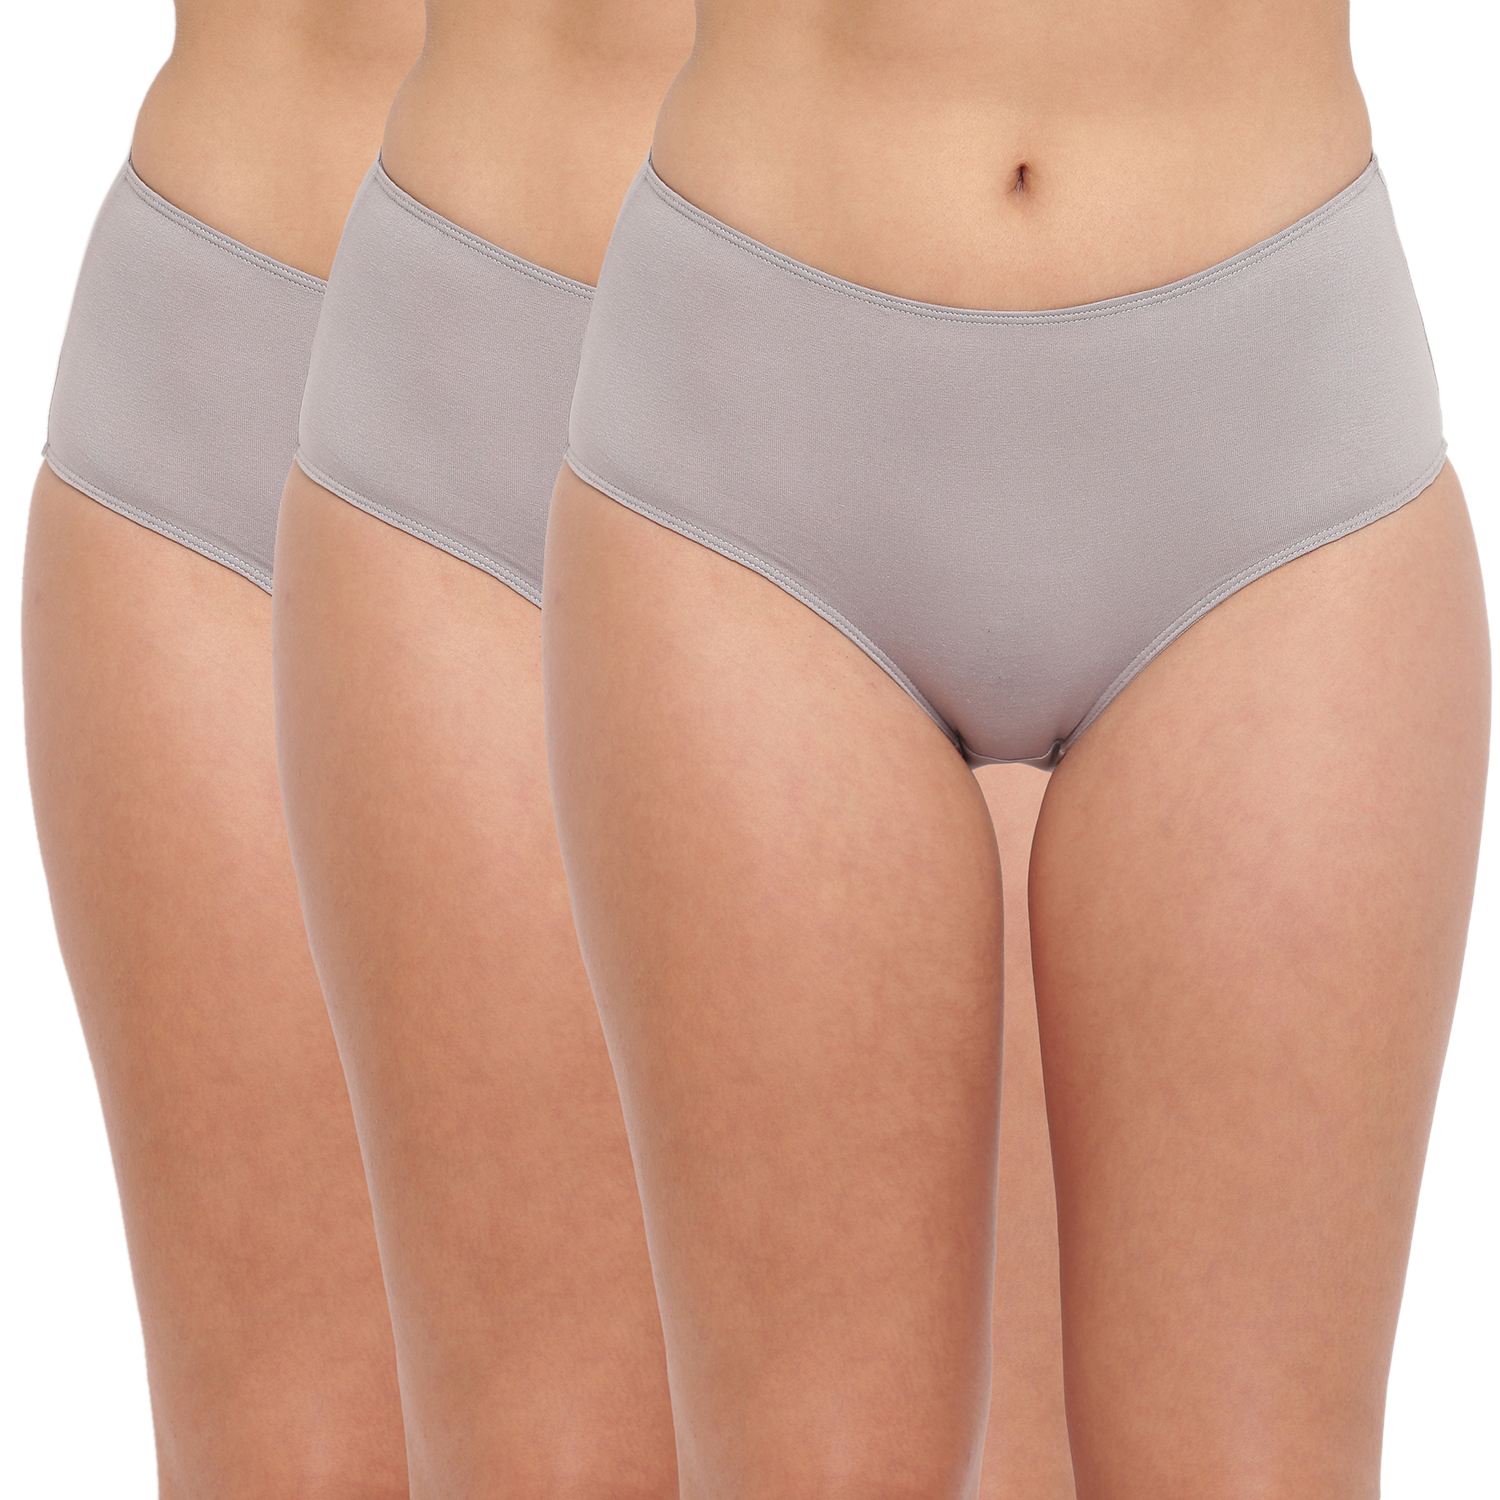 BASIICS by La Intimo | Tease 2 Please Hipster/ Full Brief Grey (Pack of 3)